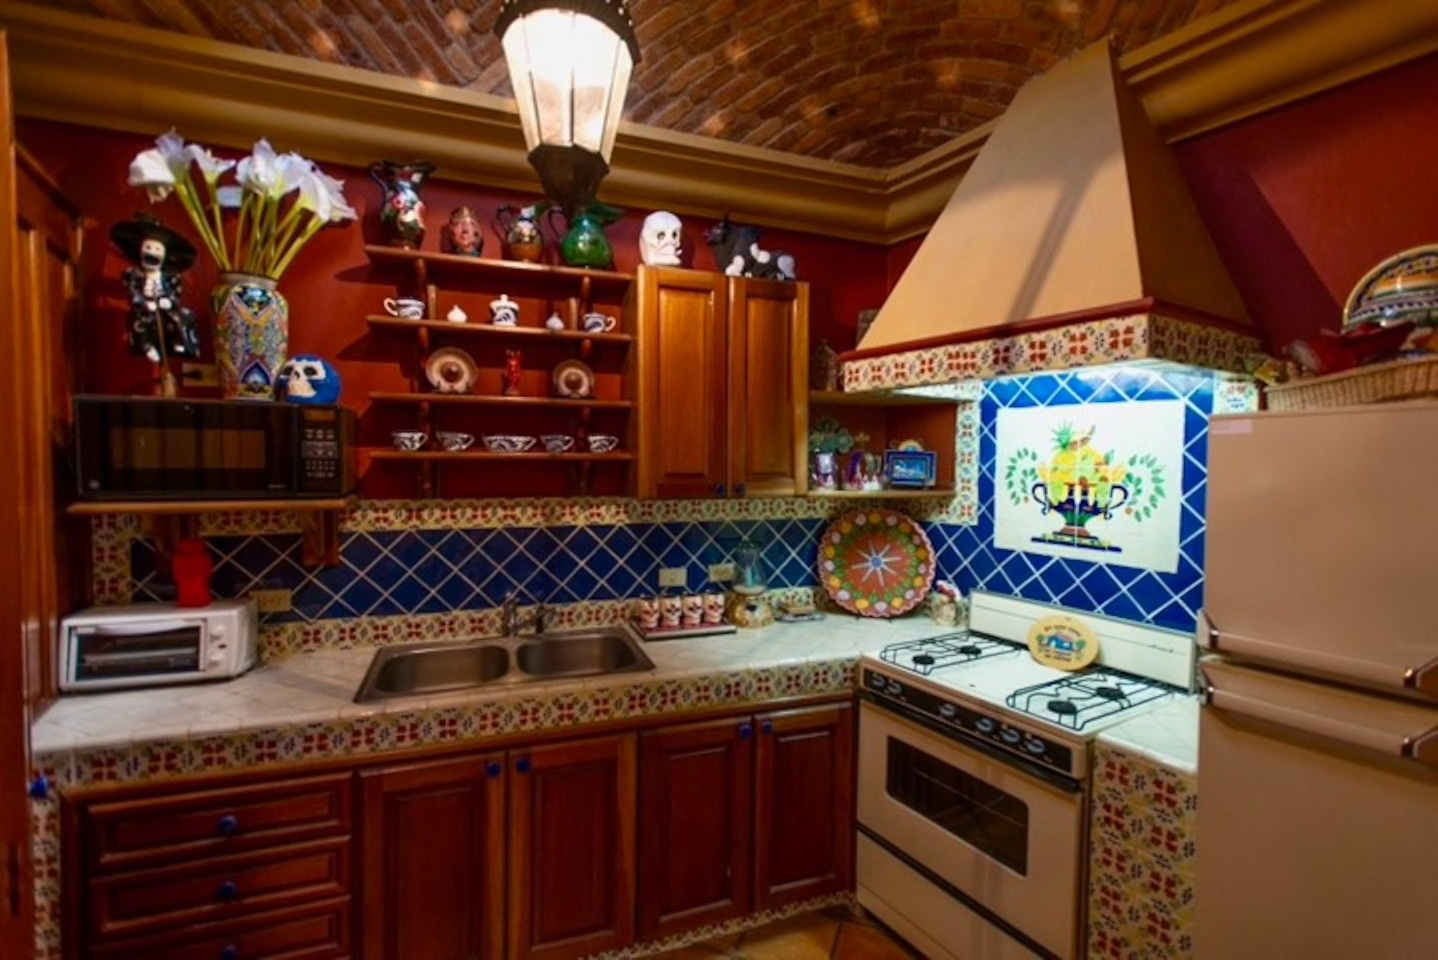 Casa Tres Angeles casita kitchen